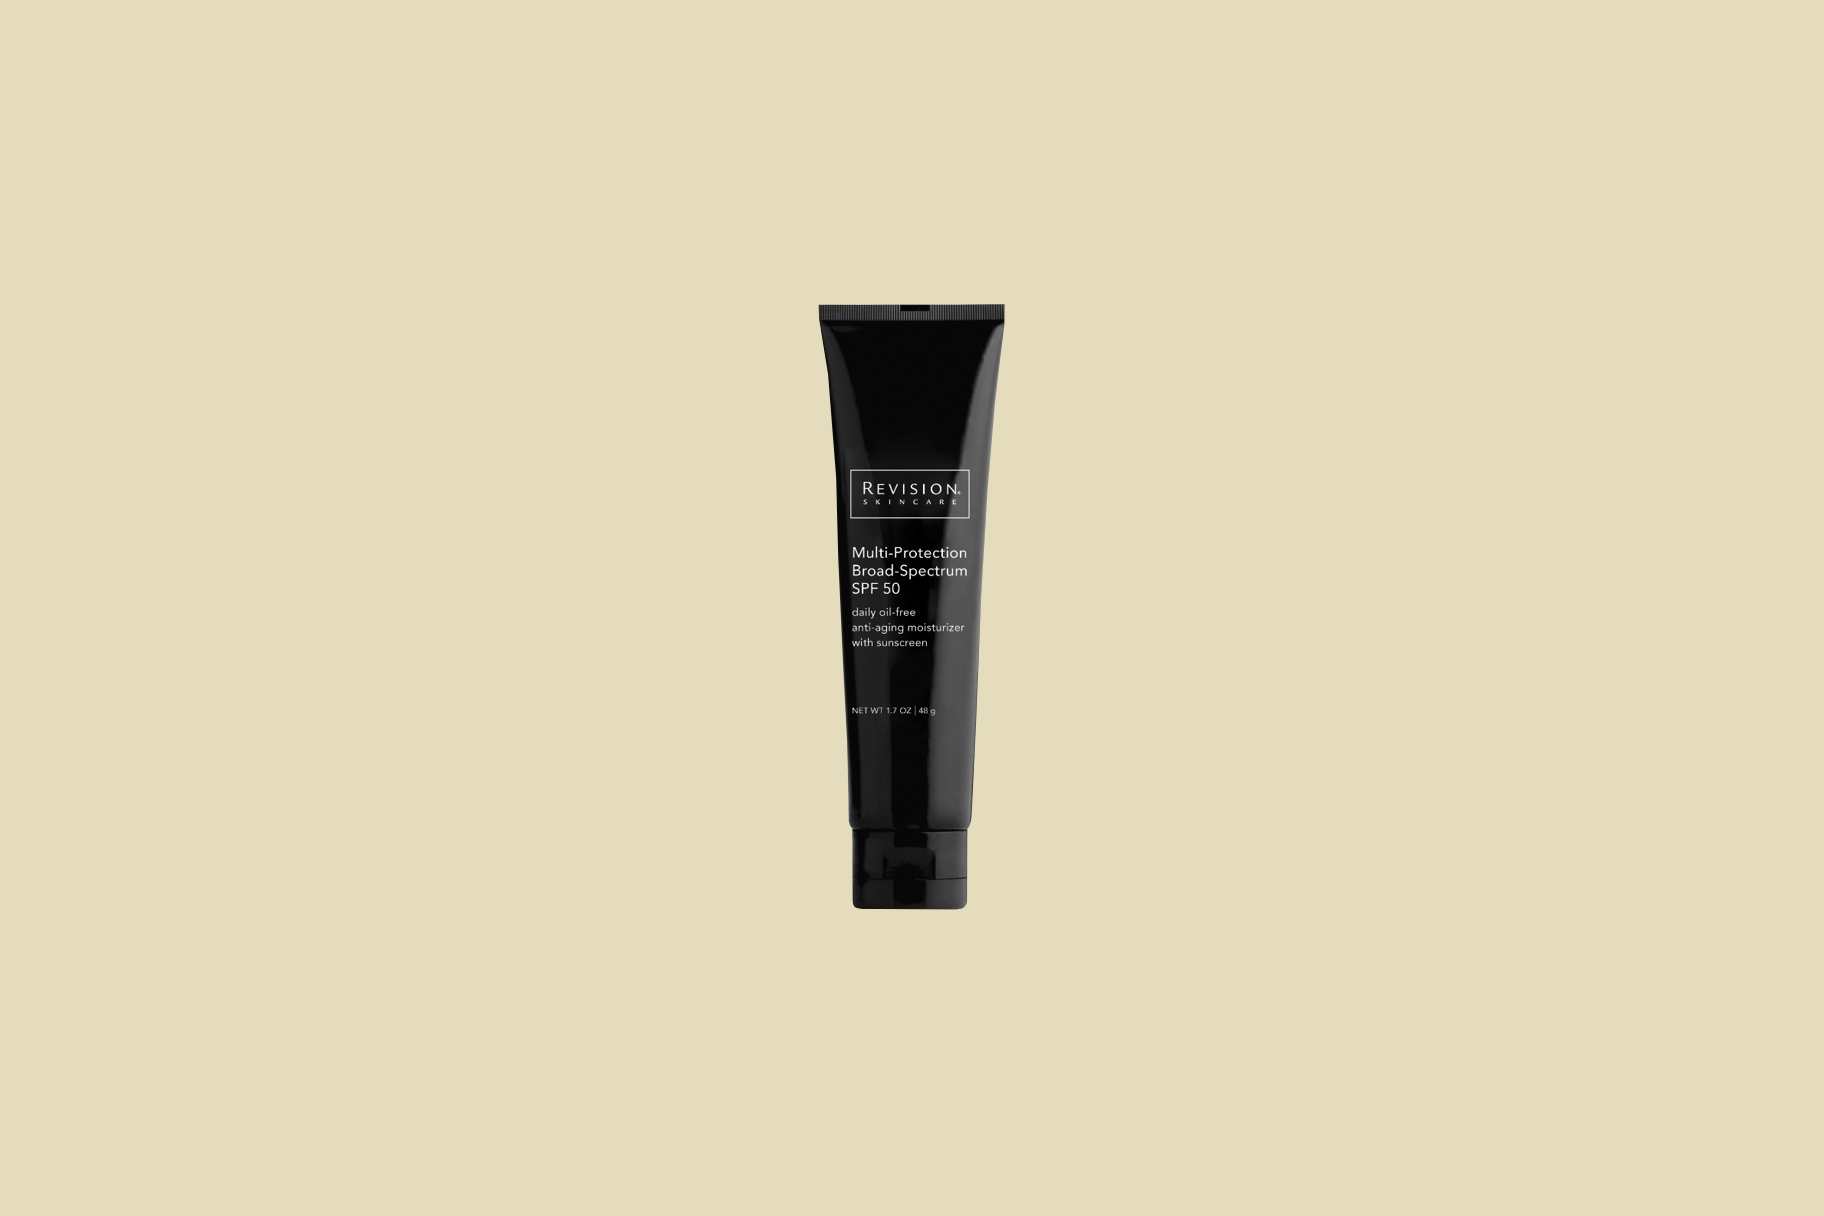 Revision Multi-Protection Moisturizing Face Sunscreen with Broad-Spectrum SPF 50